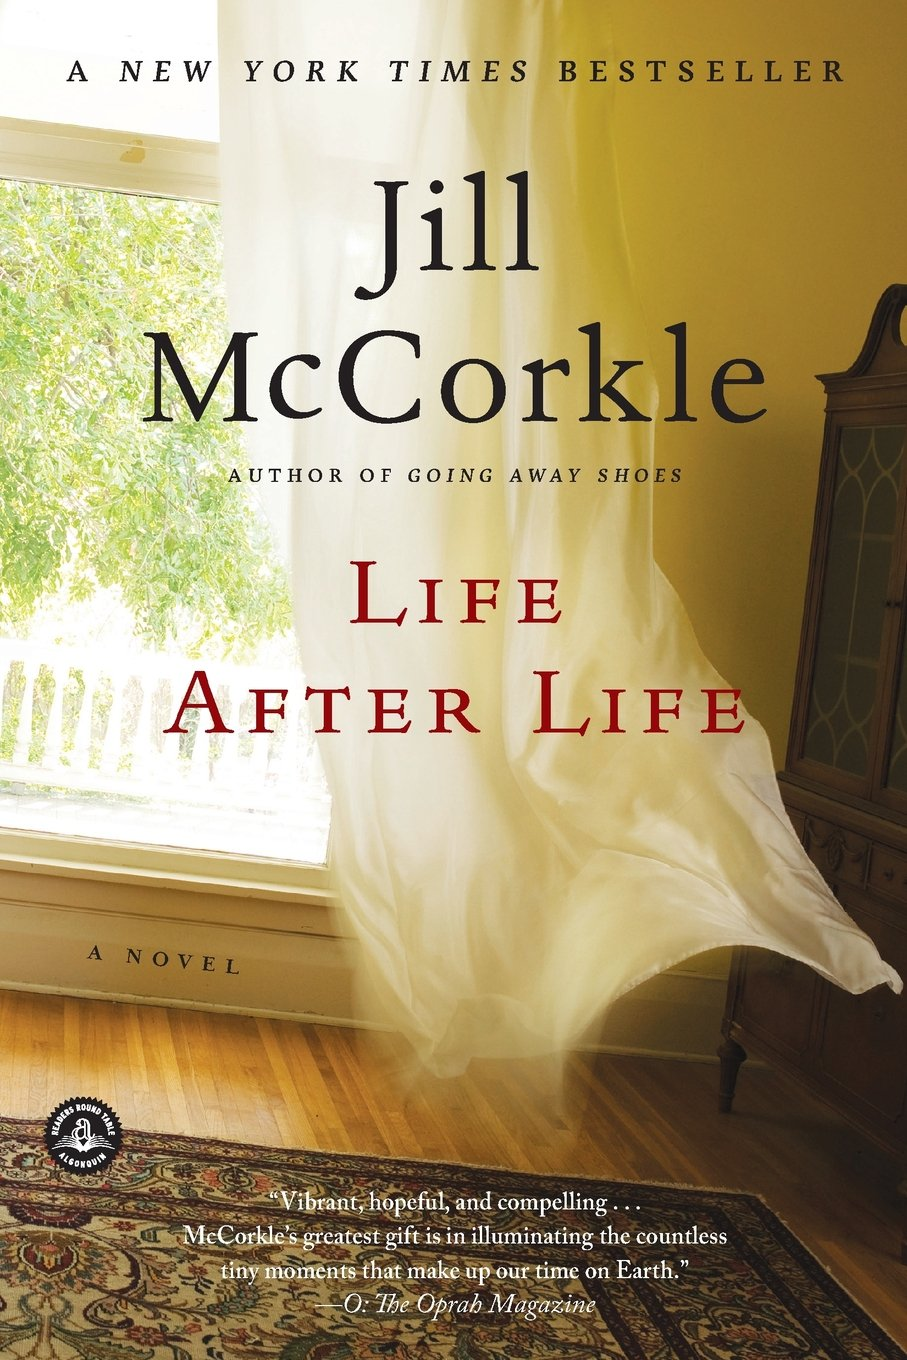 Life After Life: A Novel: Jill Mccorkle: 9781616203221: Amazon: Books